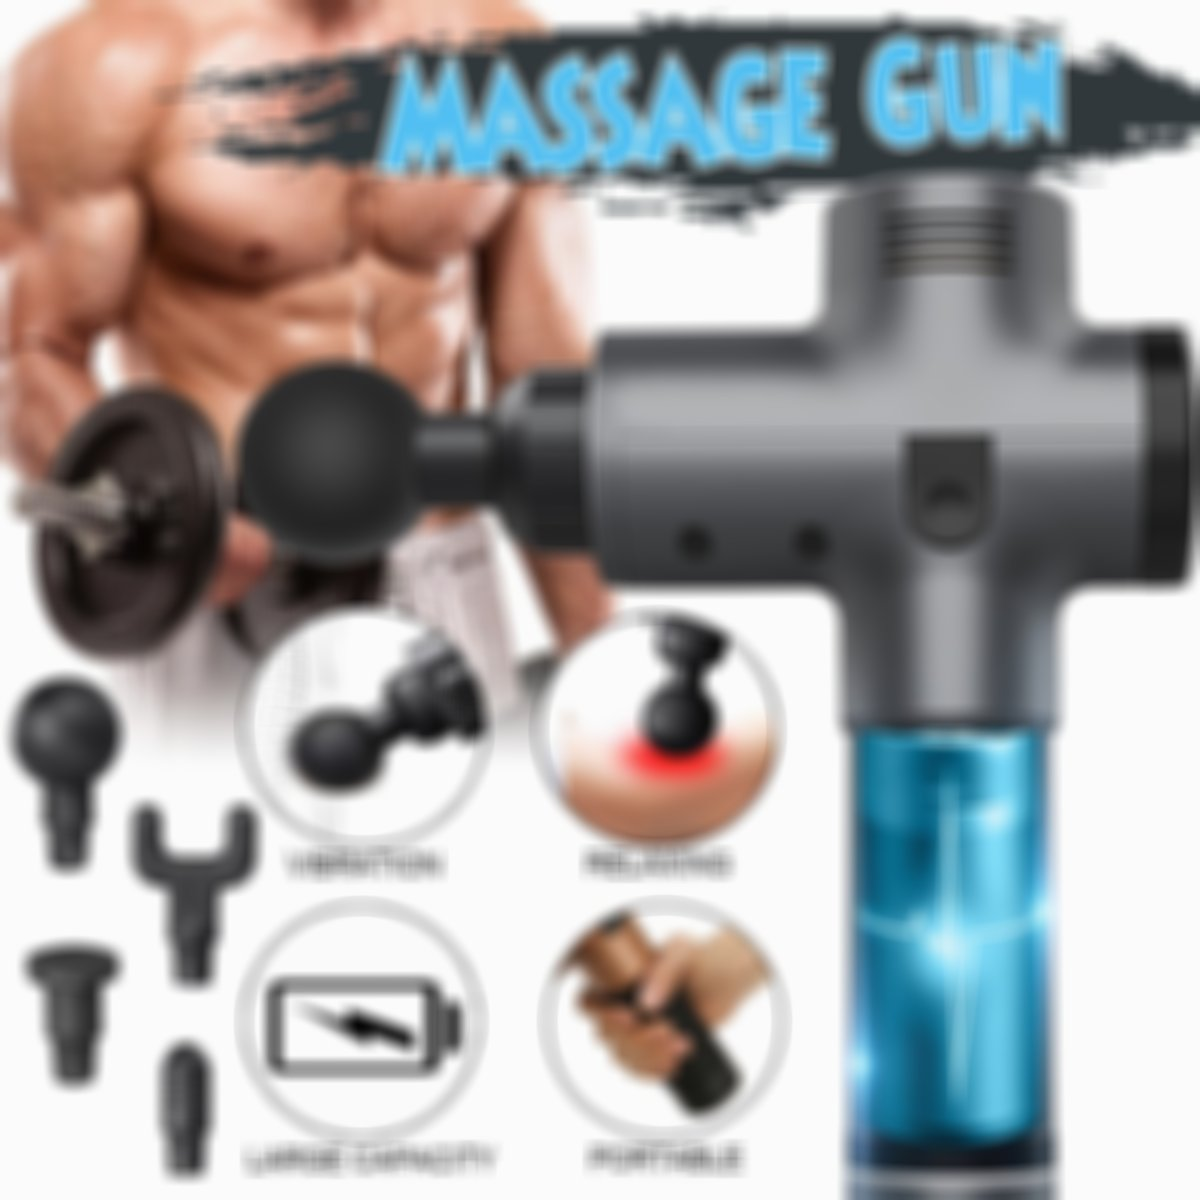 (HOT SALE- 60% OFF!!!)Multifunctional portable massage gun,enjoy relaxing at home!